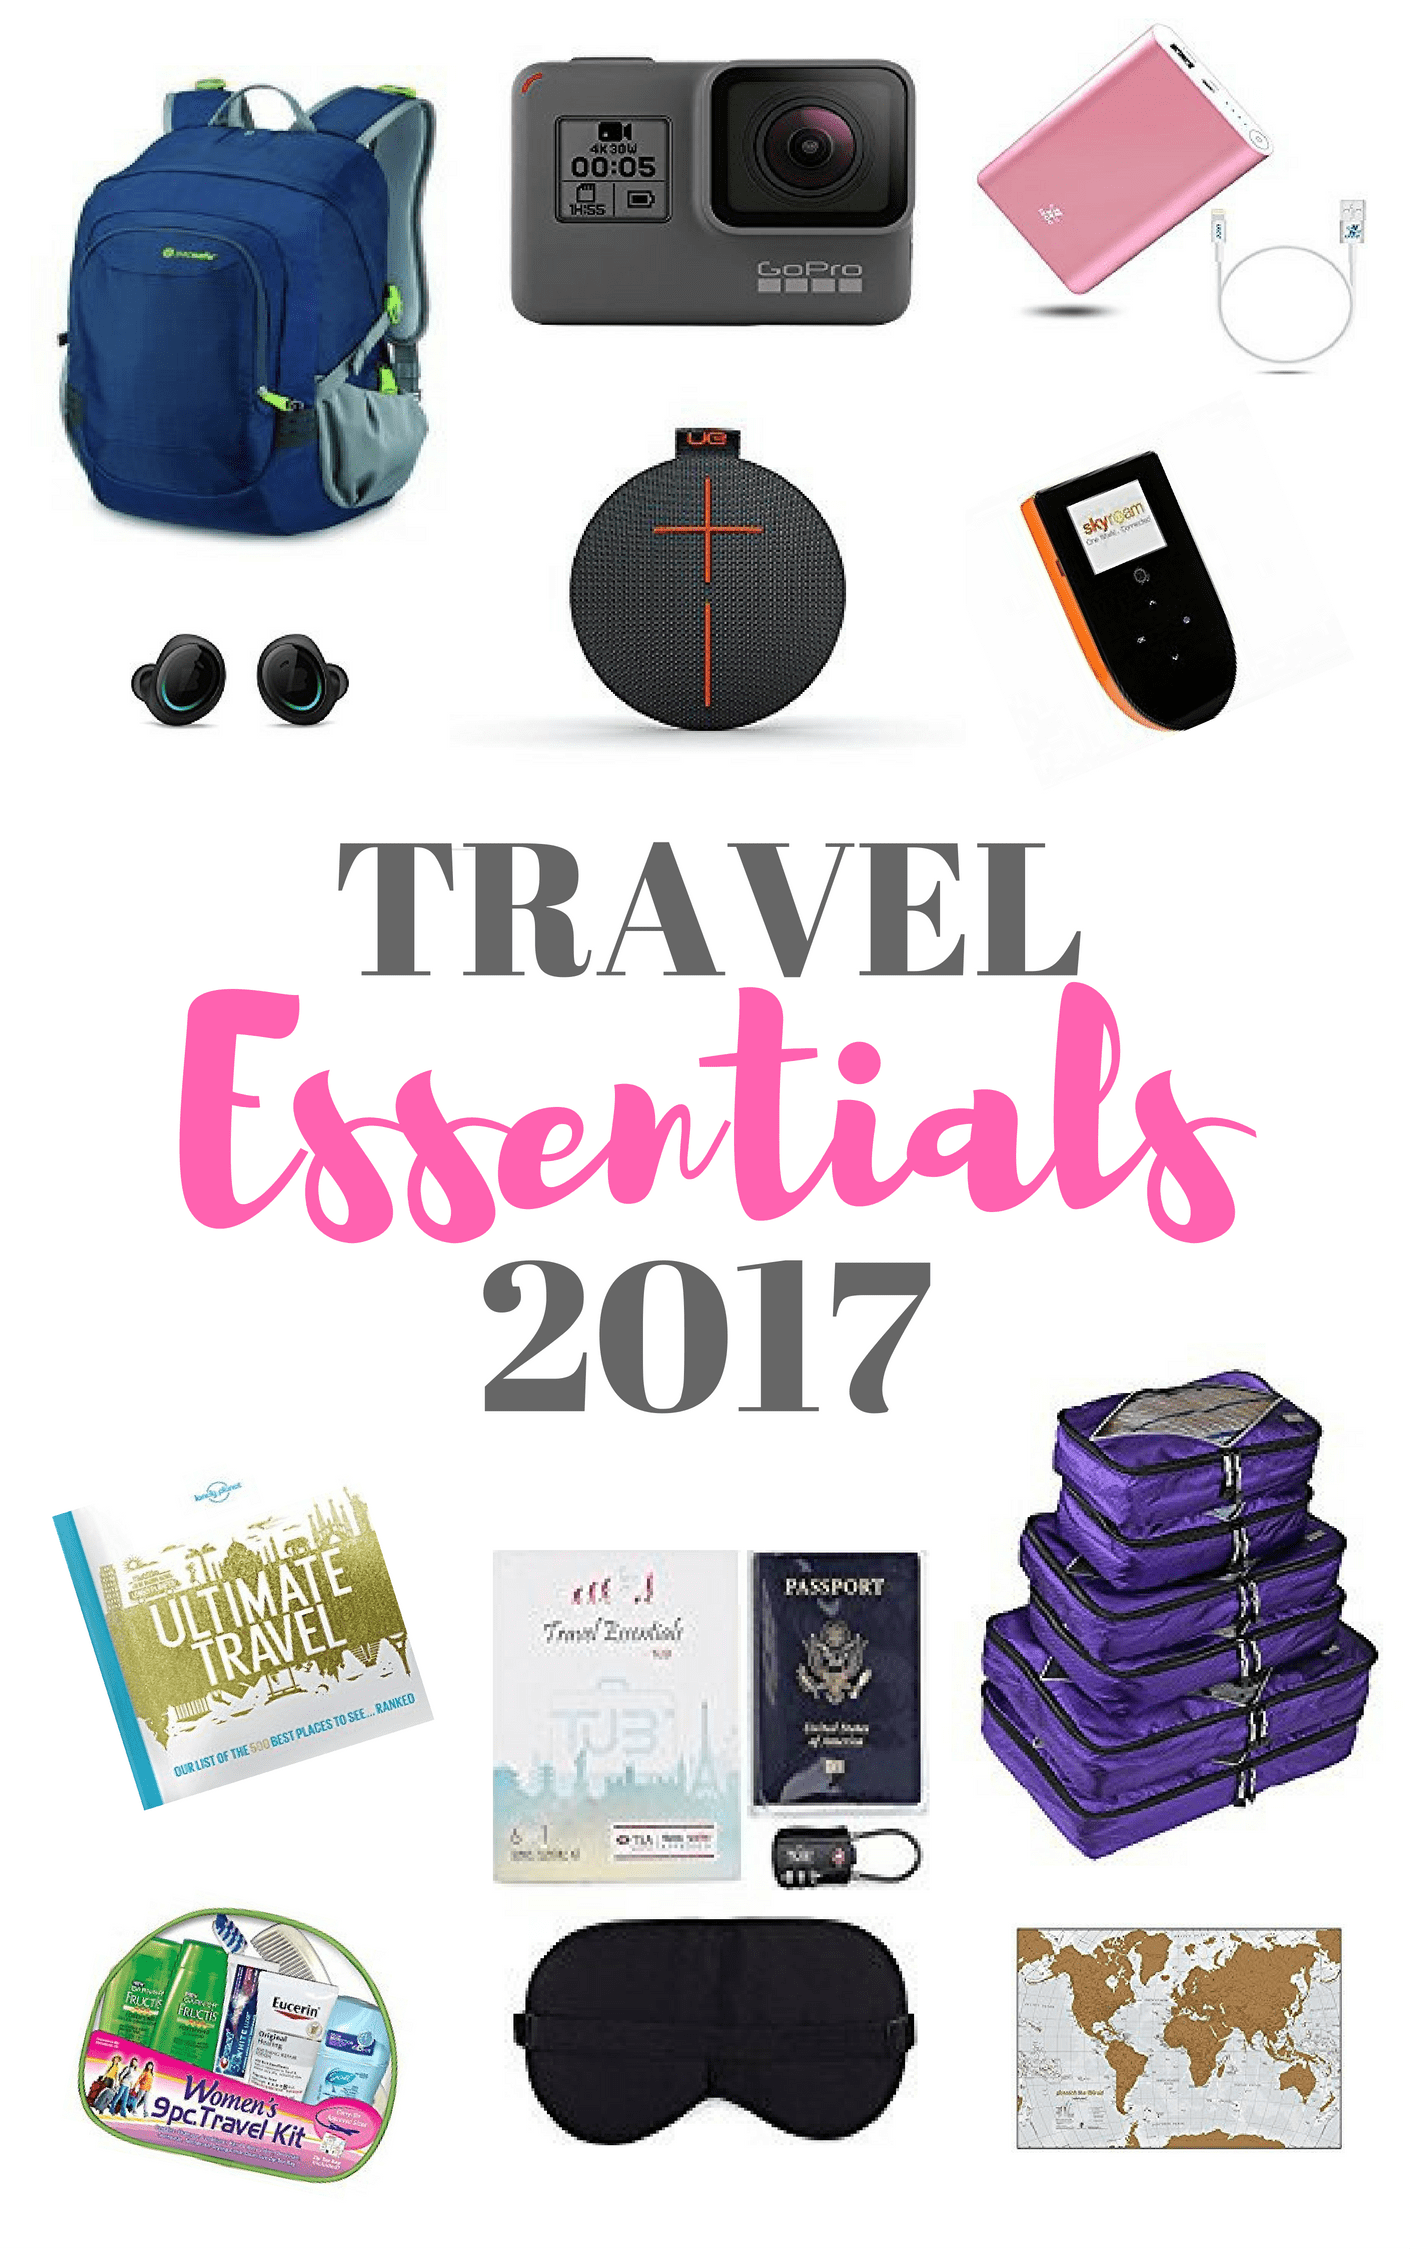 Reis Essentials Essentials Travel Items For 2017 Packliste Unterwegs